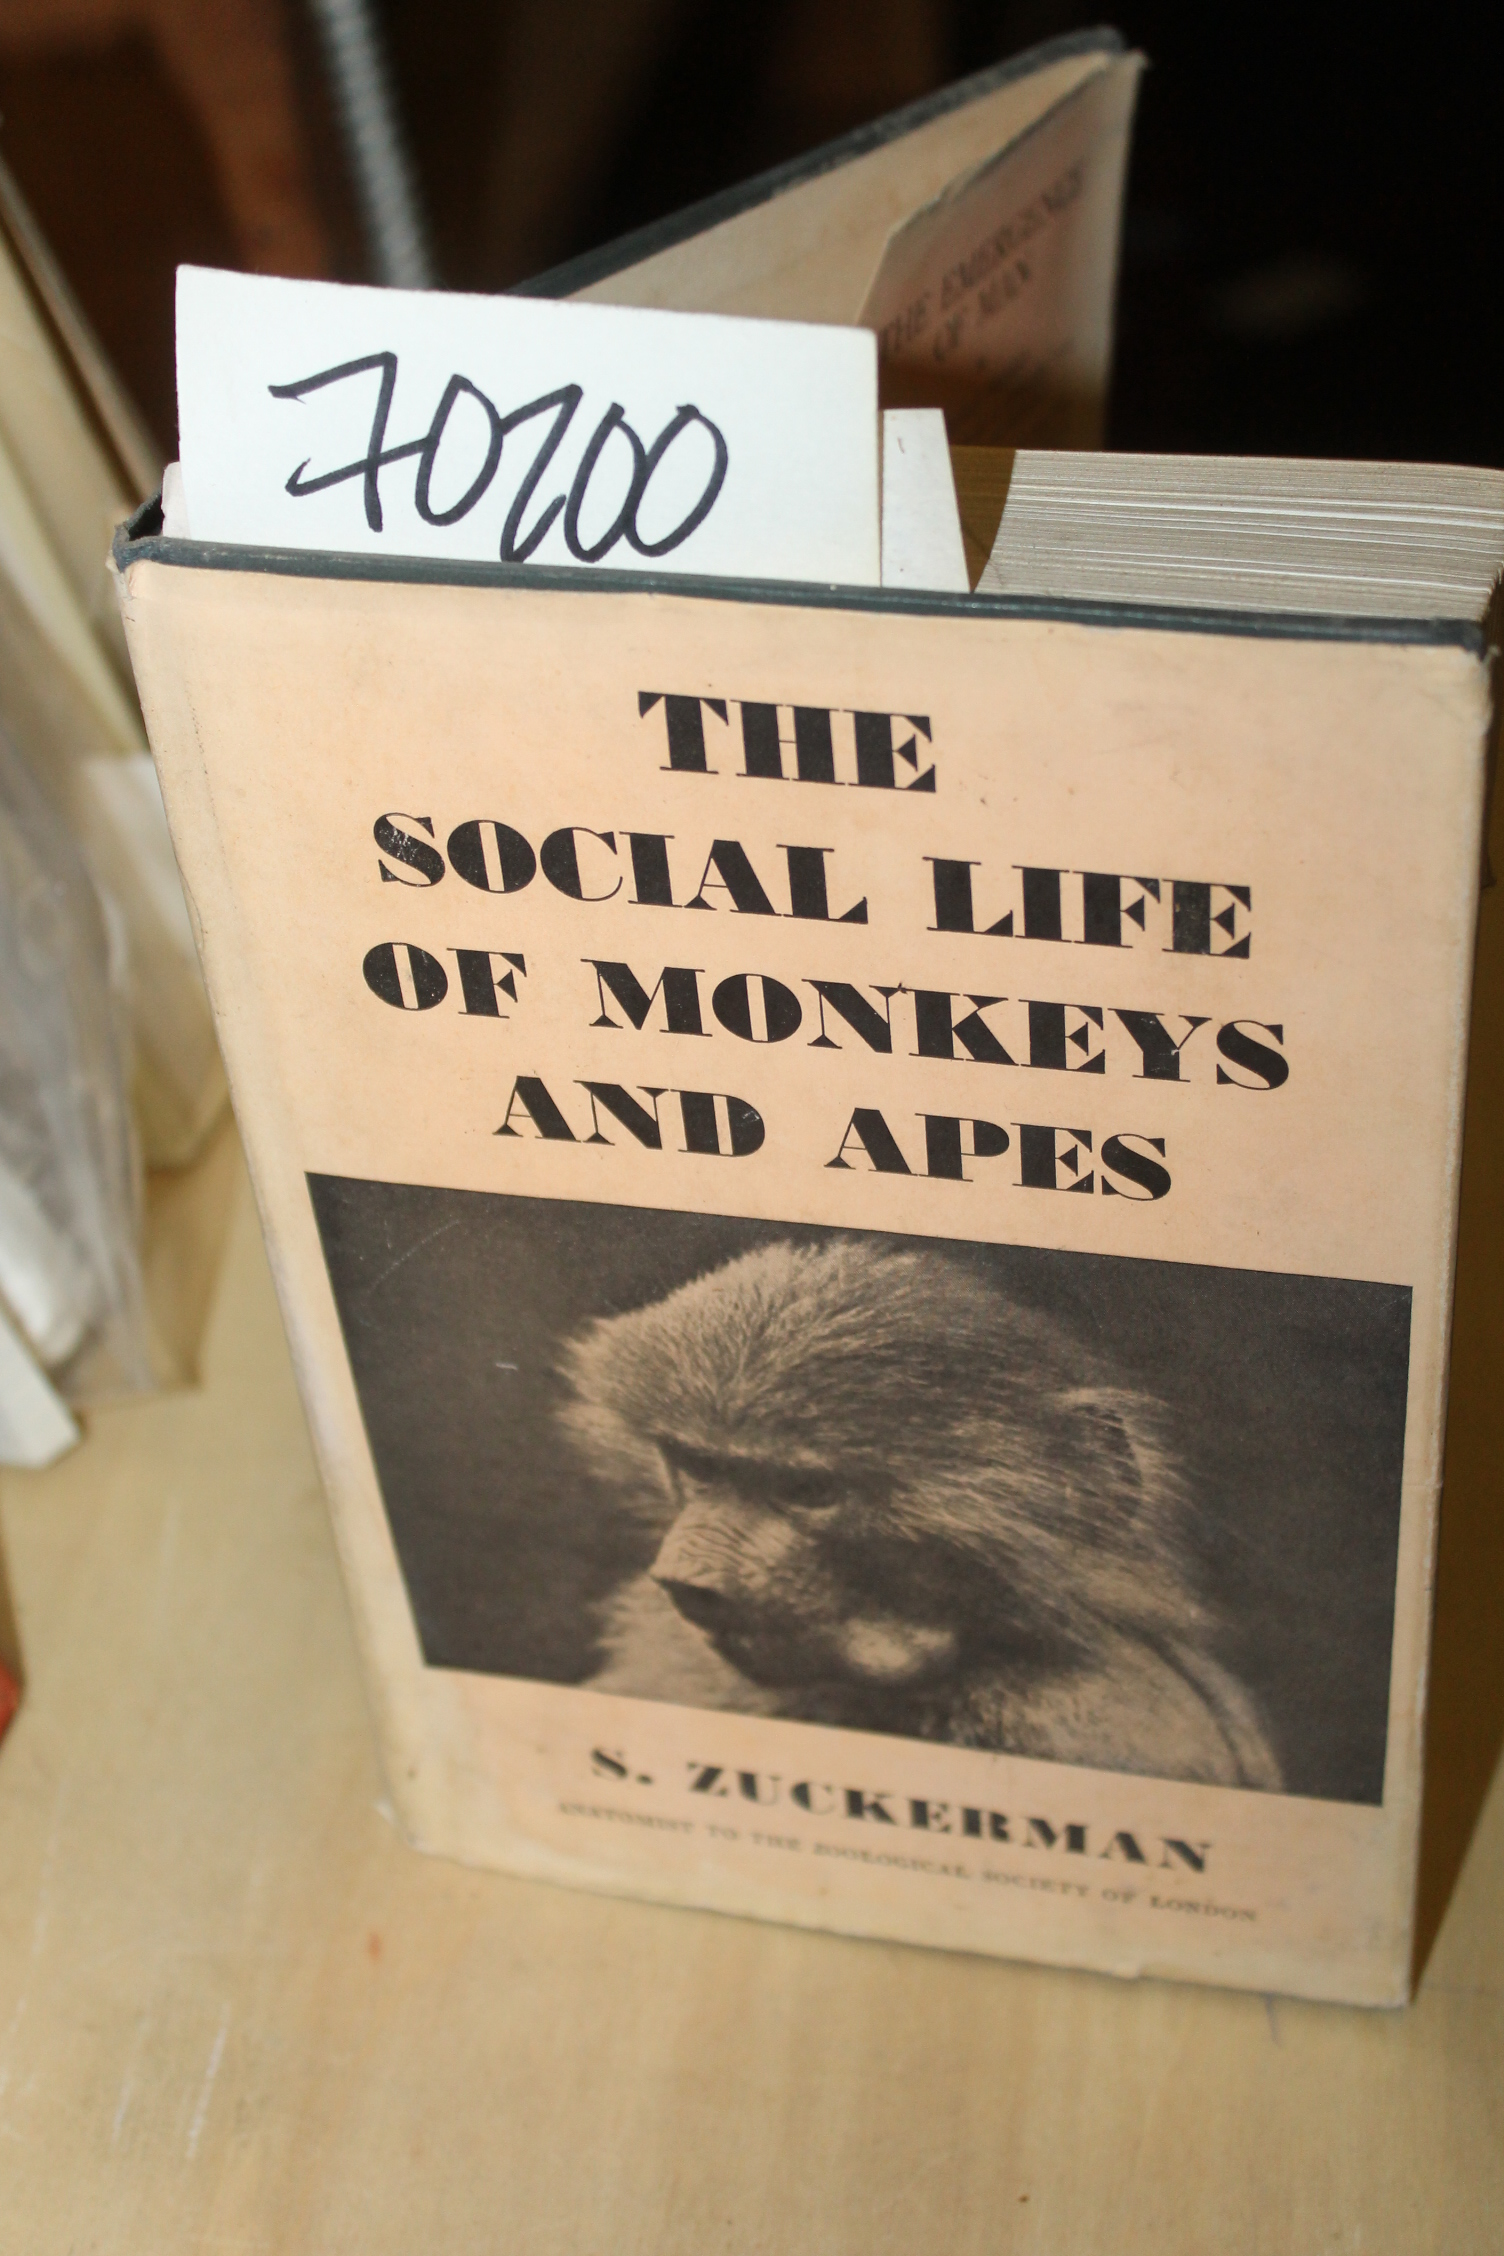 Zuckerman, S.: The Social Life of Monkeys and Apes